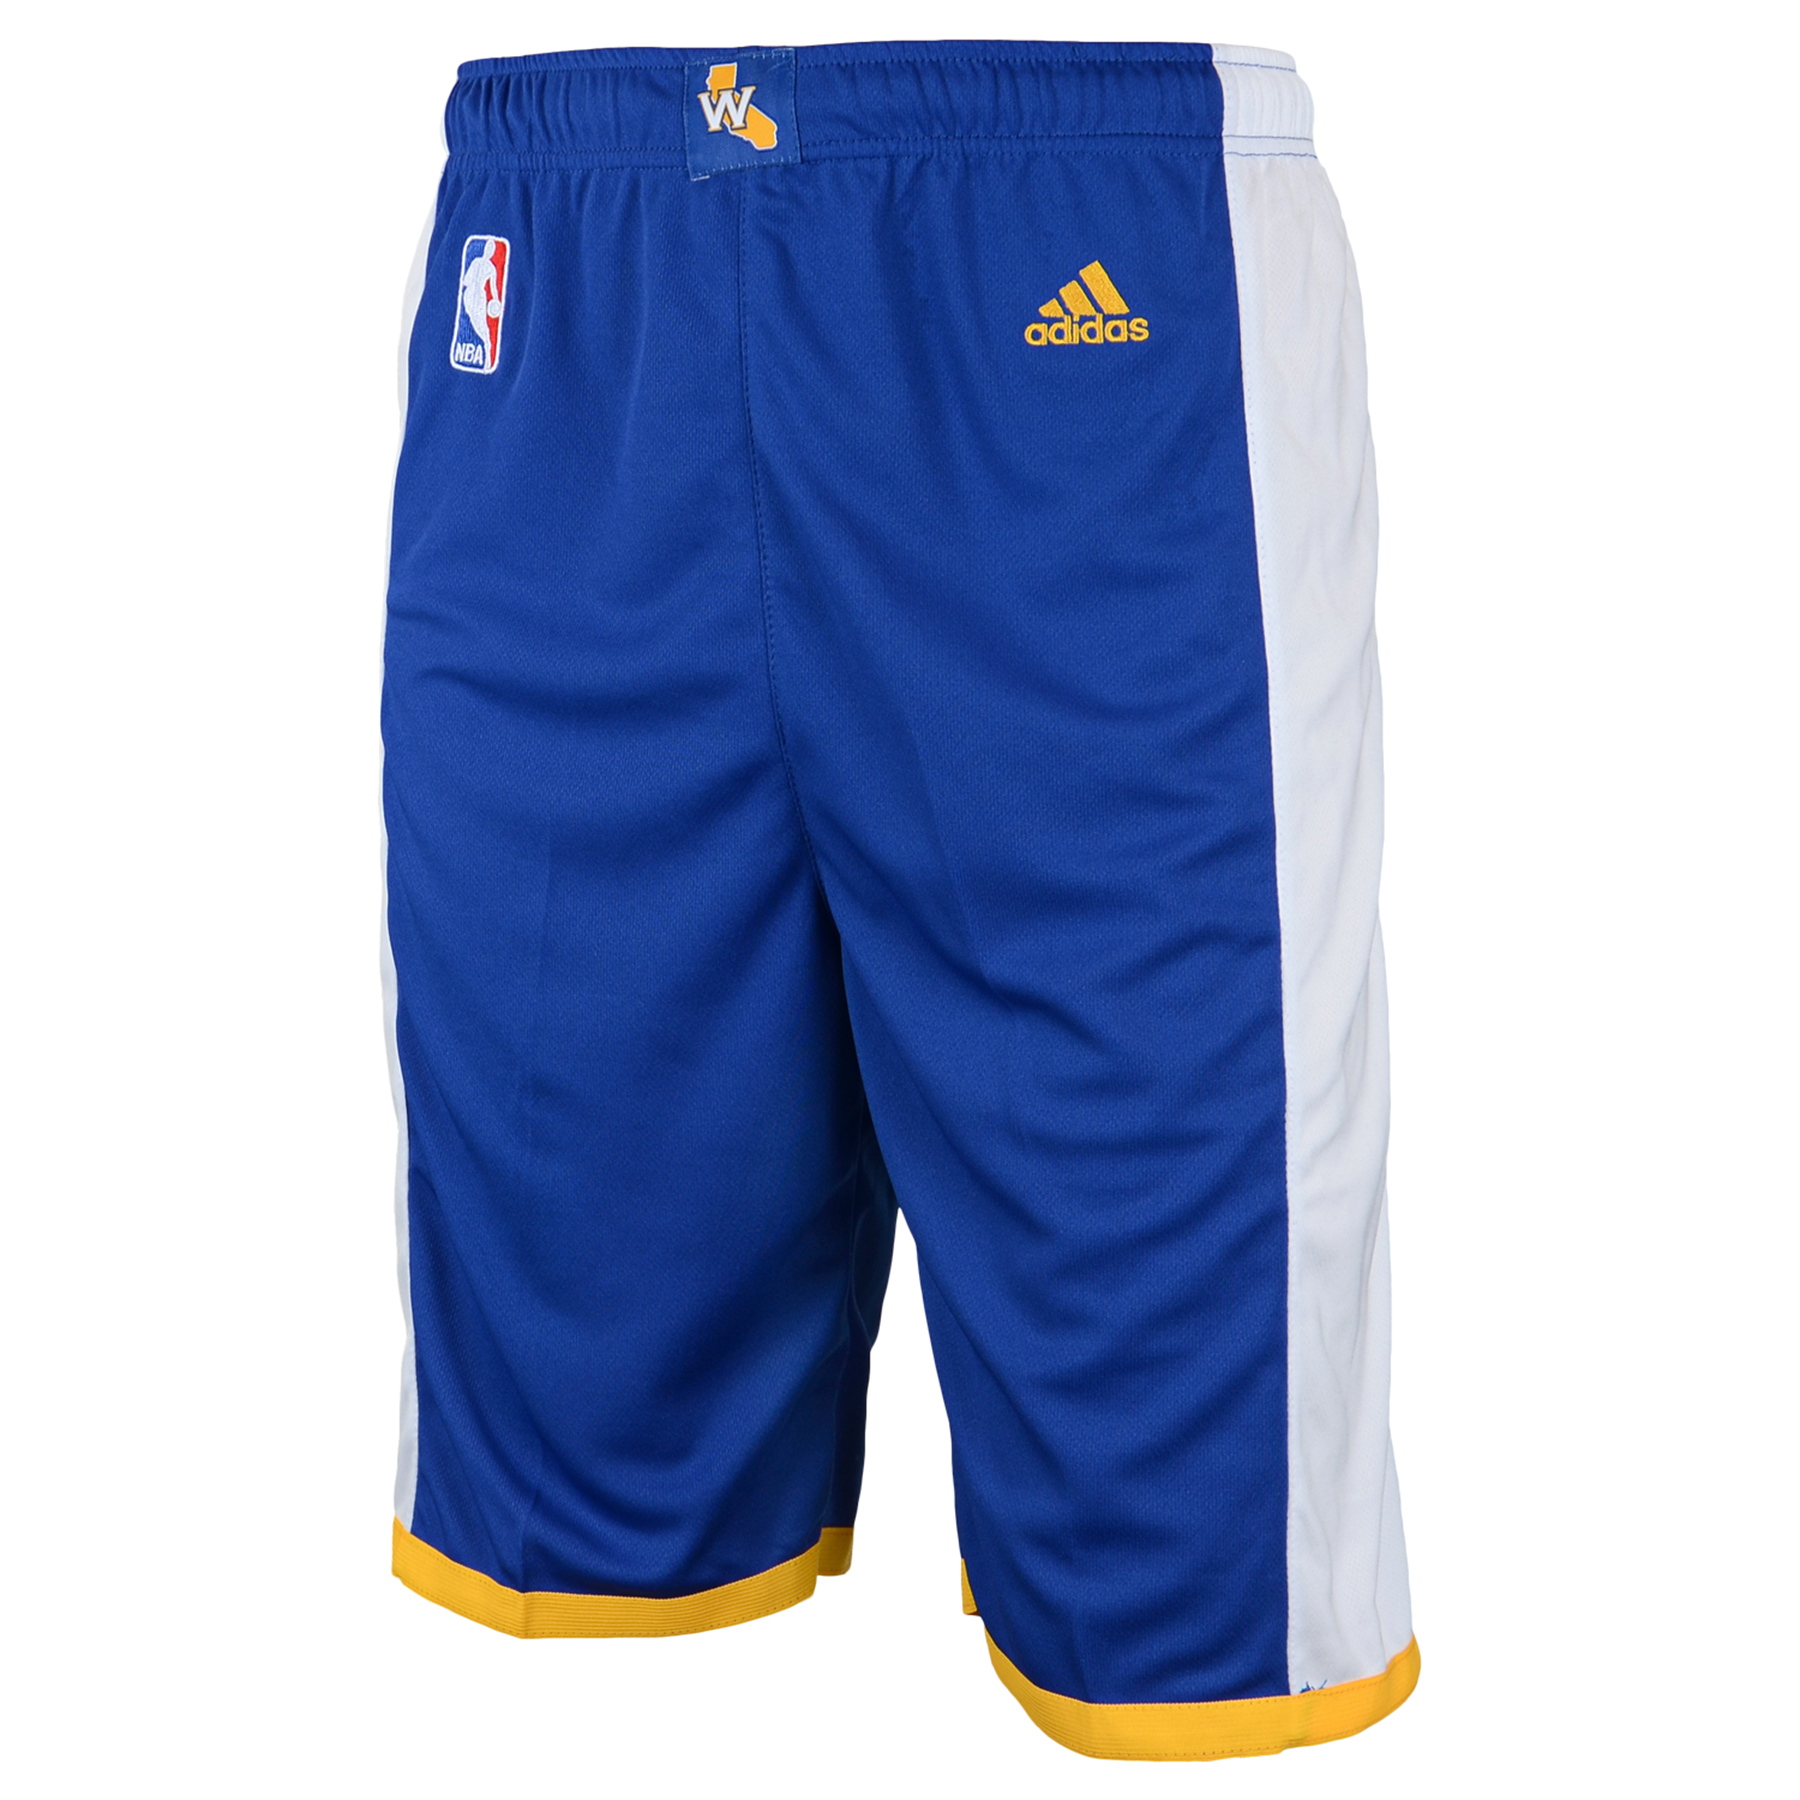 Golden State Warriors Road Replica Shorts - Youth